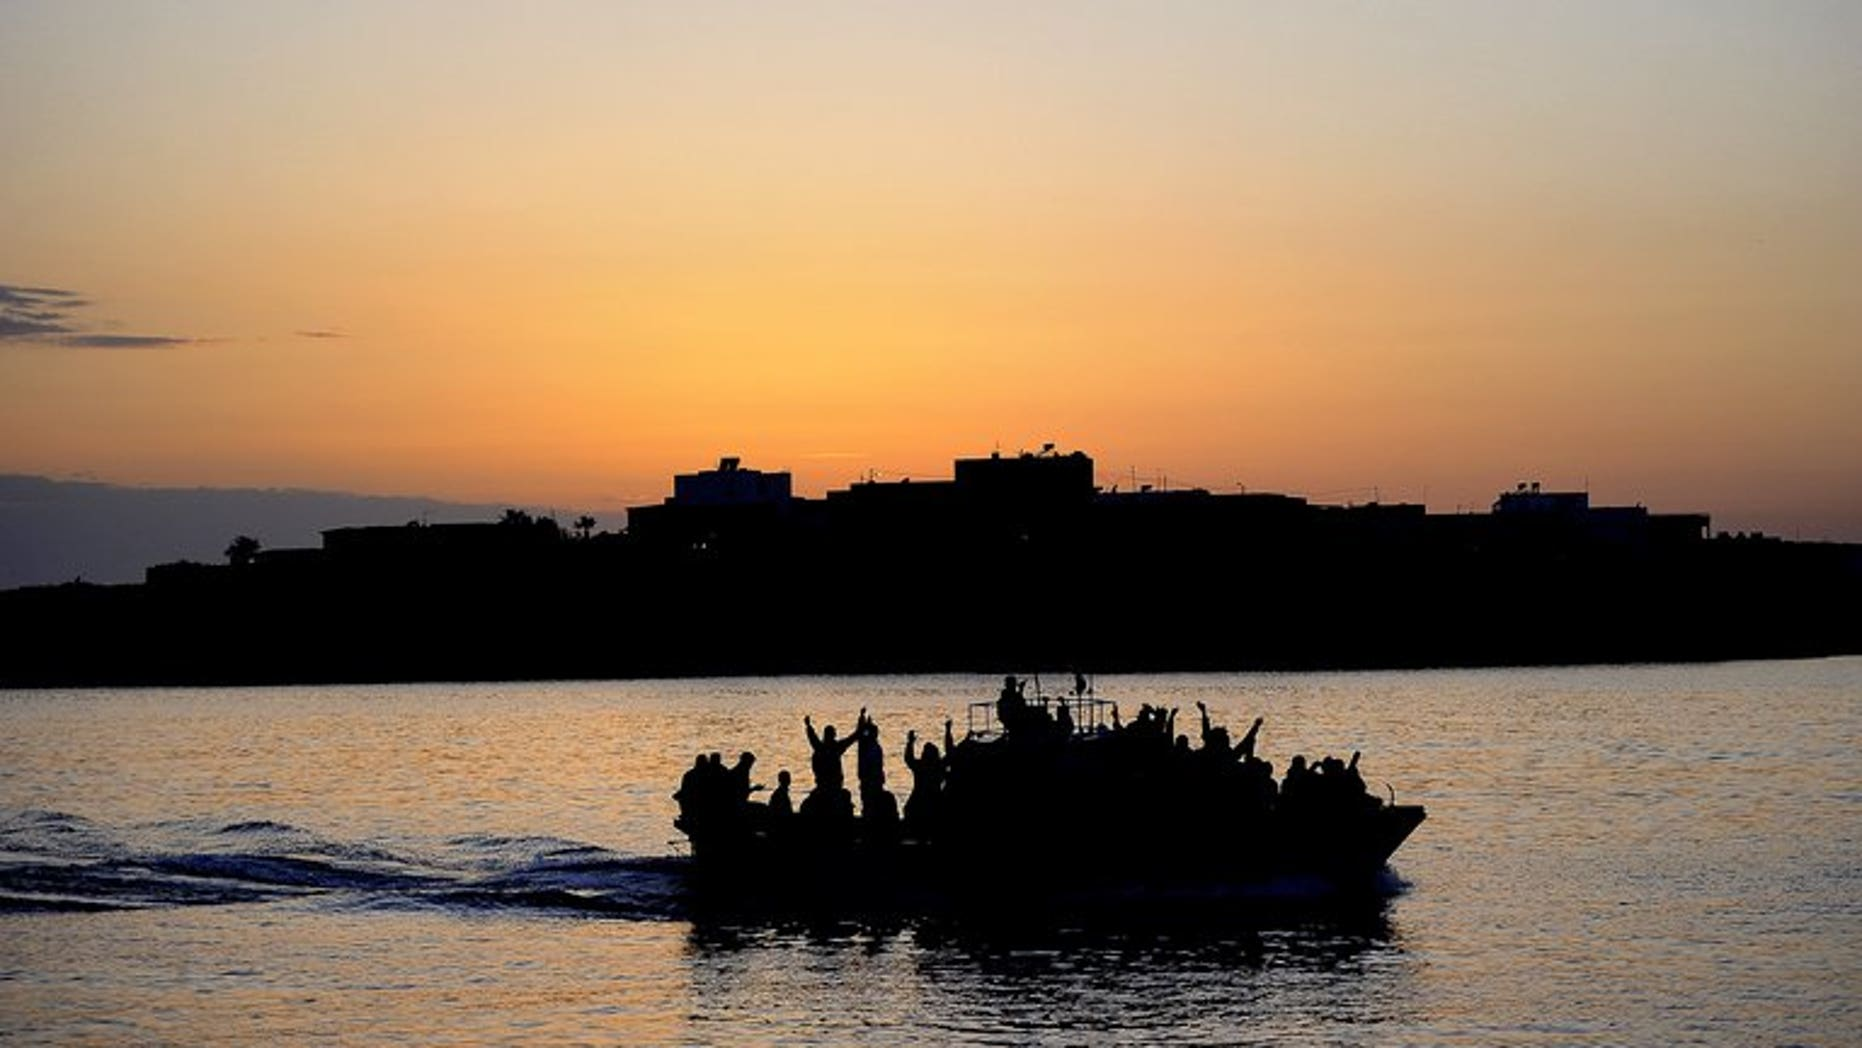 A boat carring Tunisian migrants enters the port of Lampedusa on April 12, 2011. Italian Interior Minister Angelo Alfano called for human traffickers who shuttle migrants across the sea to Italy to be stopped on Sunday, after 31 boat people drowned during an attempted crossing.